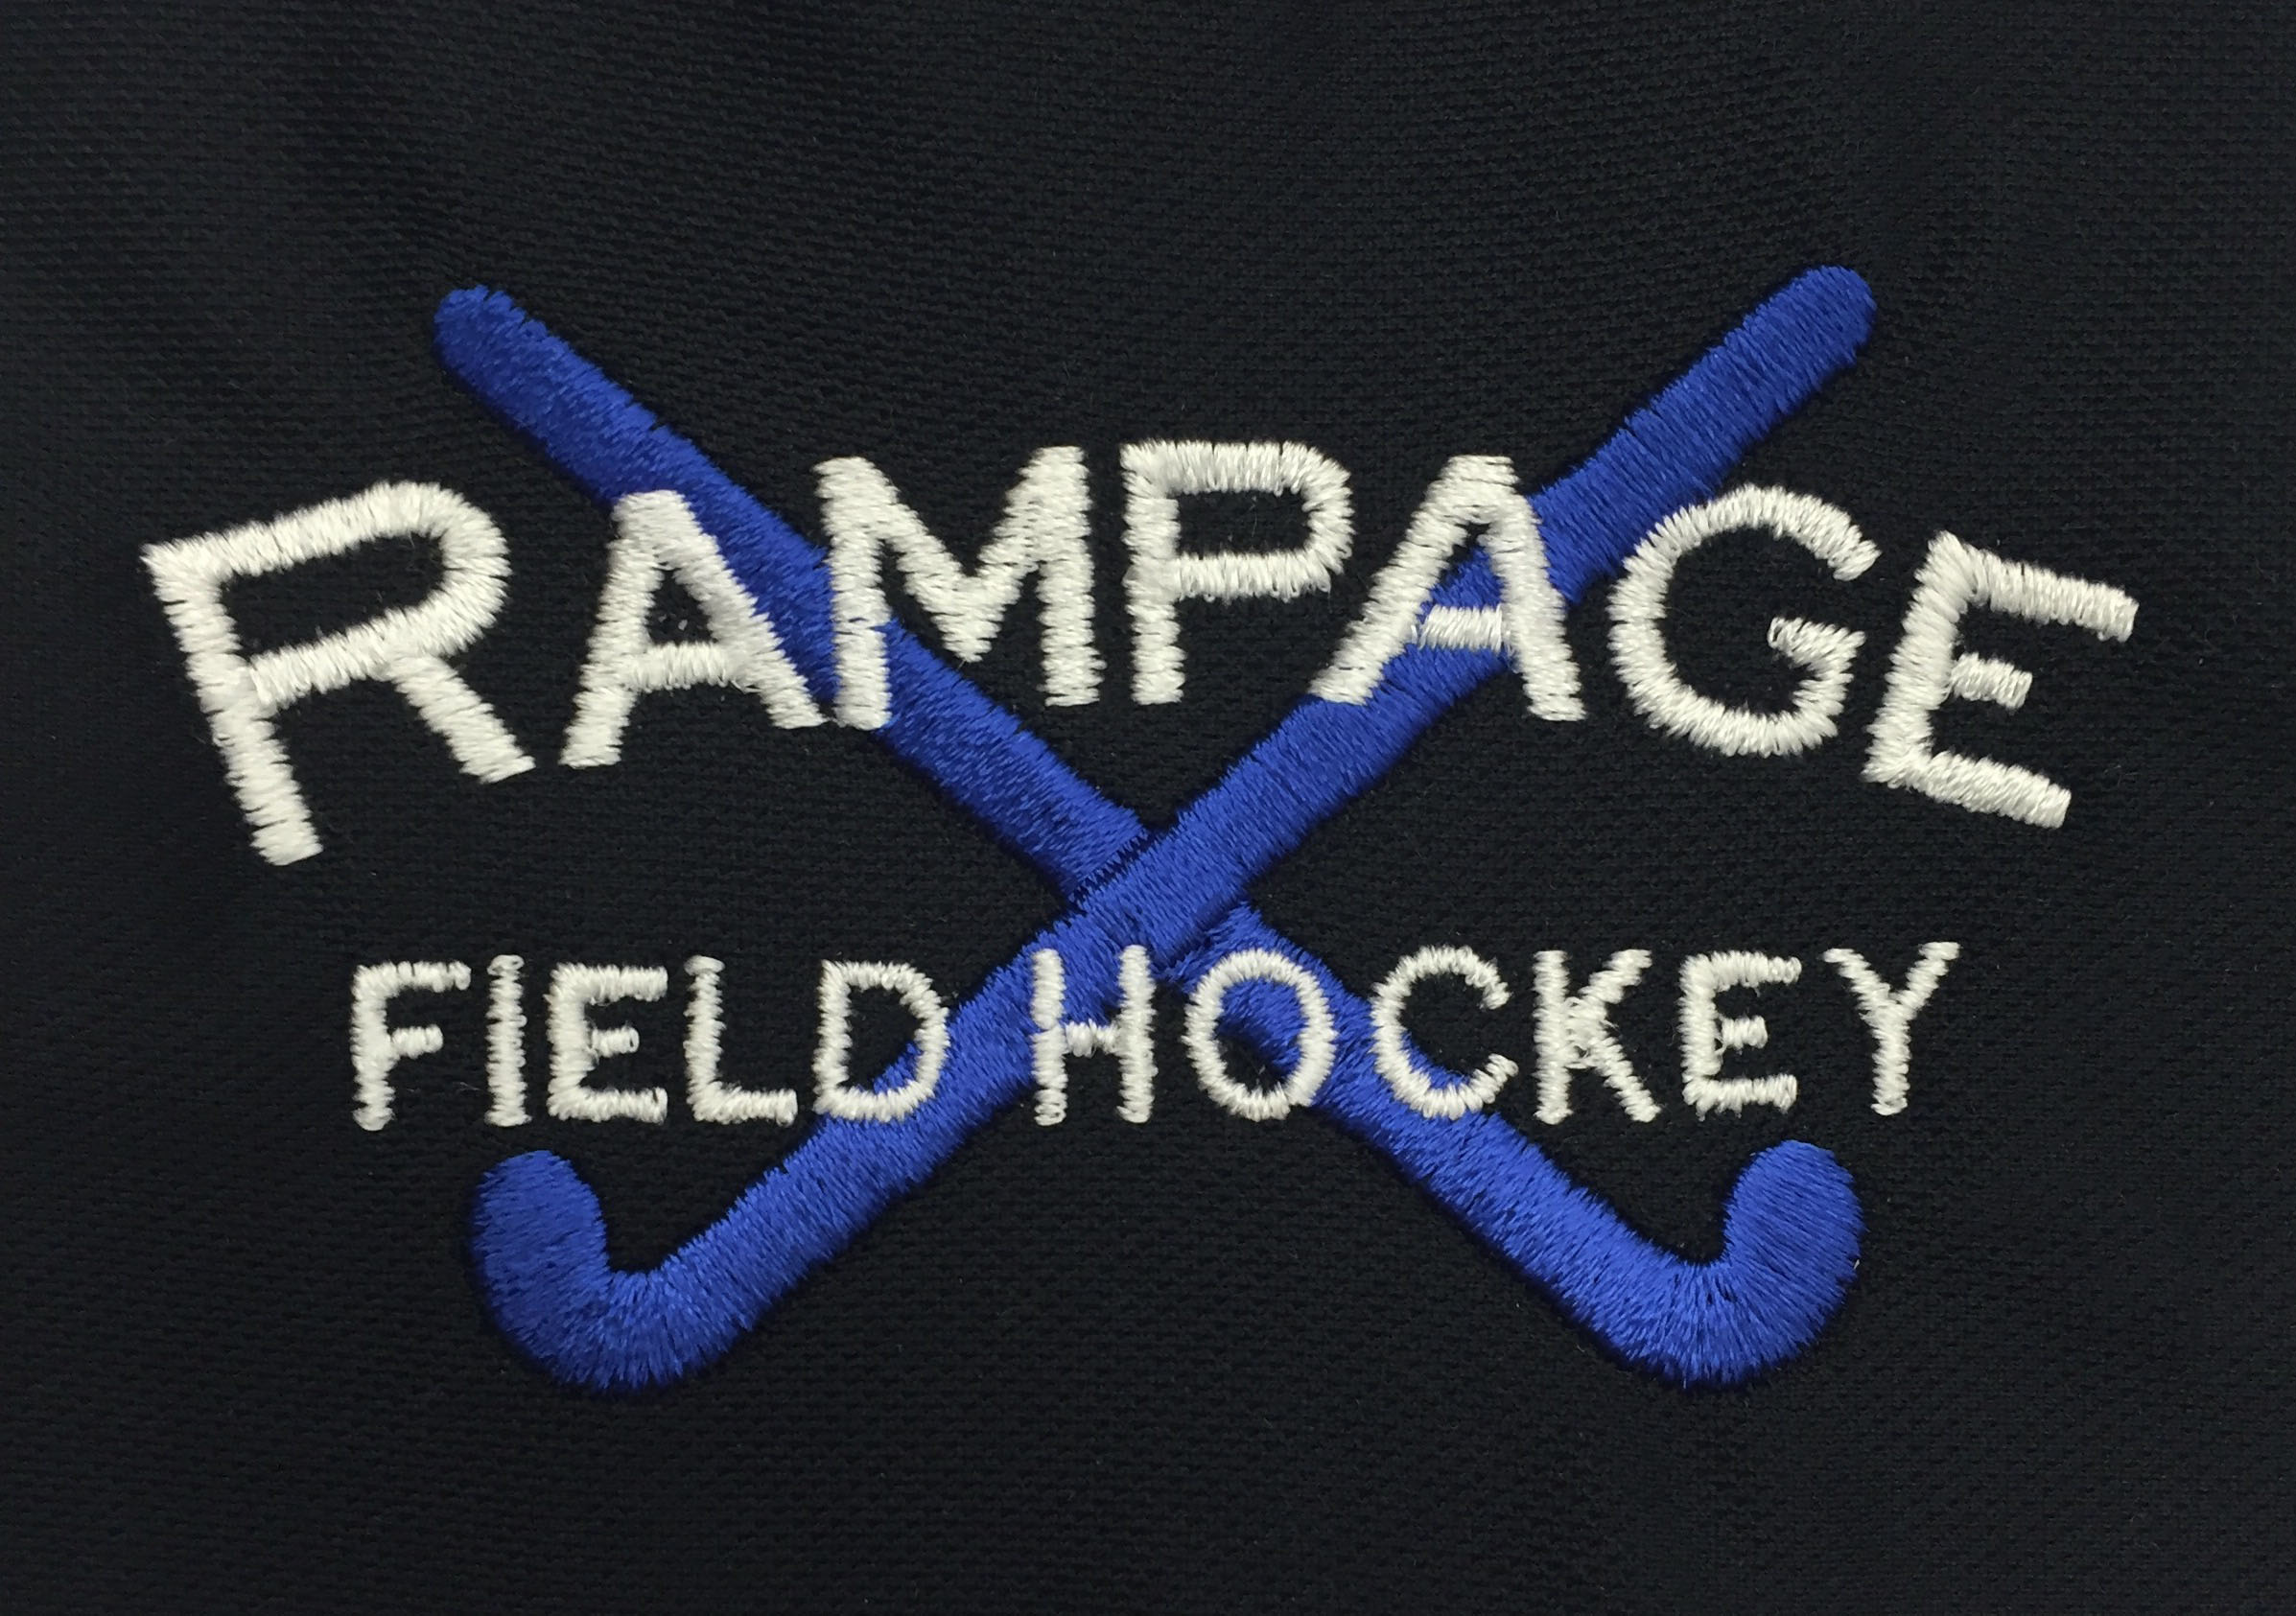 Field Hockey-Garden State Embroidery-Cherry Hill-New Jersey- South Jersey-Embroidery.JPG